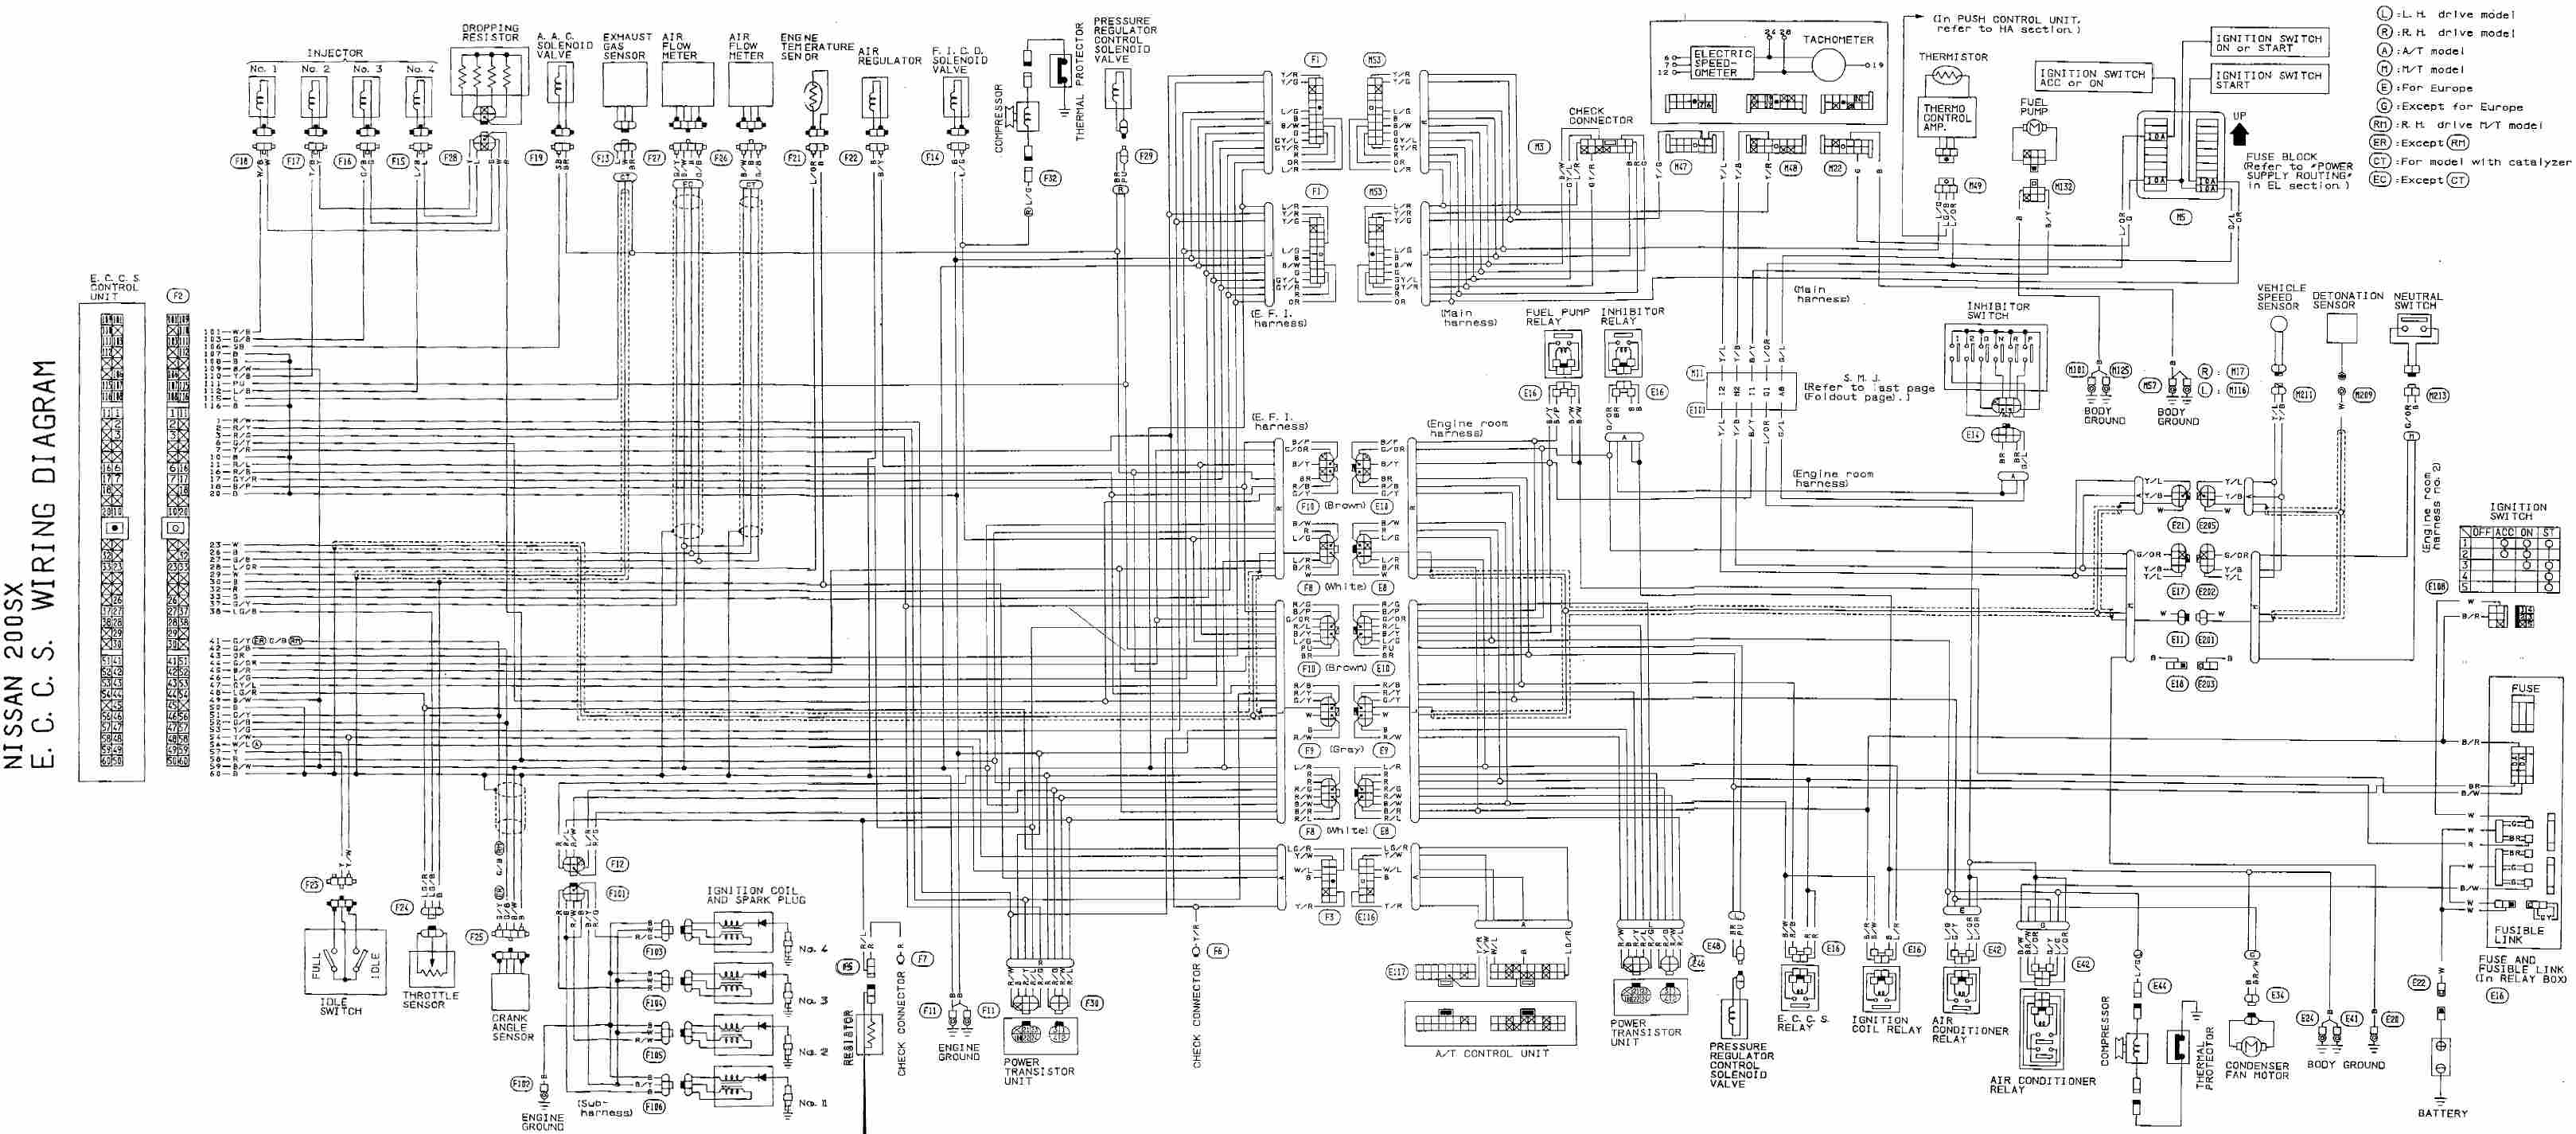 Wiring diagram for nissan patrol basic car nissan patrol wiring wiring diagram for nissan patrol basic car nissan patrol wiring schematic wiki share rh wikishare us asfbconference2016 Gallery